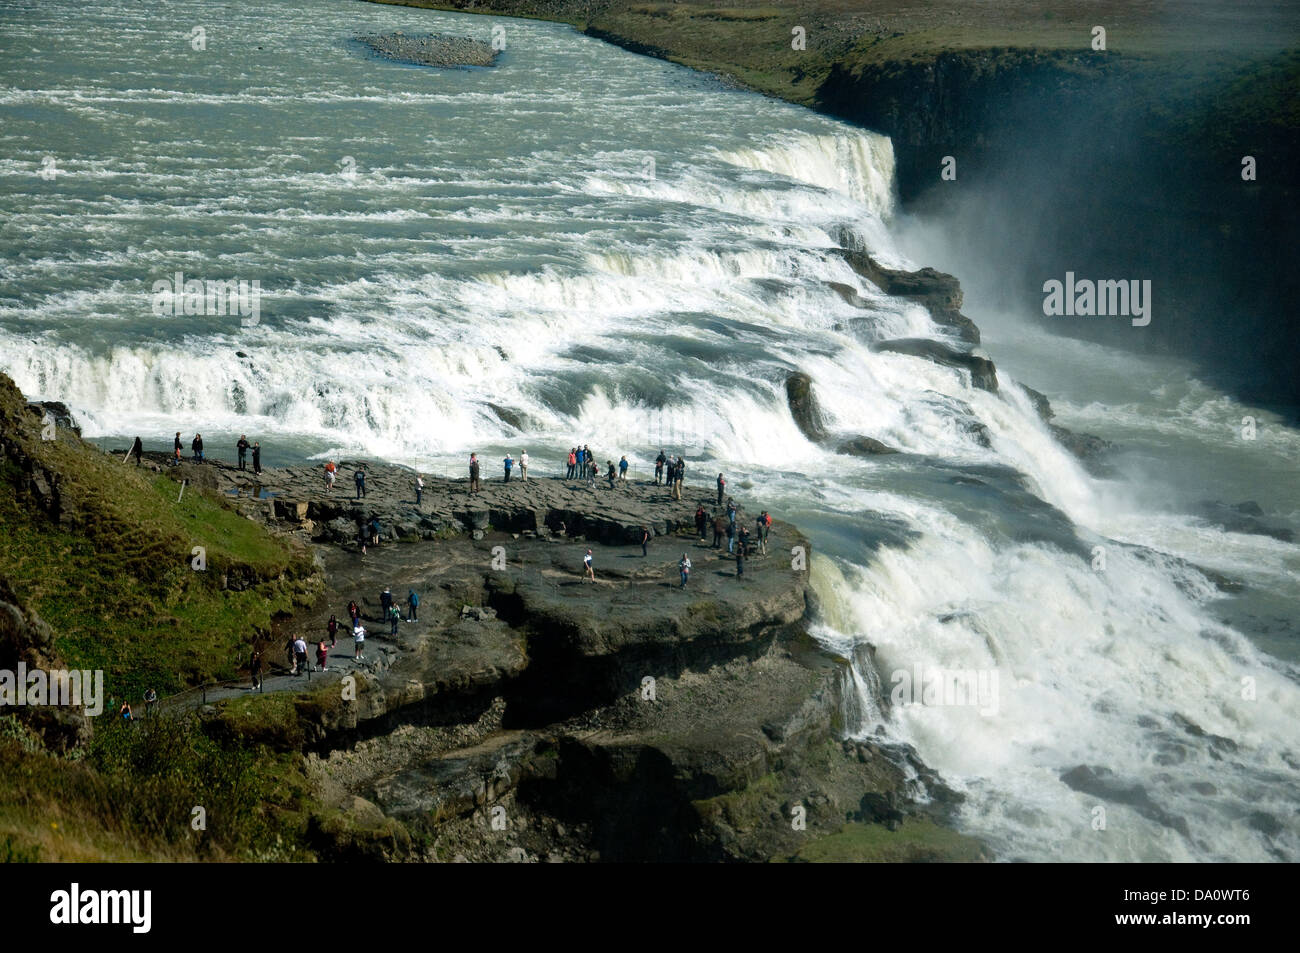 Gullfoss, Iceland's most spectacular waterfall, two cascades on the Hvita River flowing into a deep gorge - Stock Image